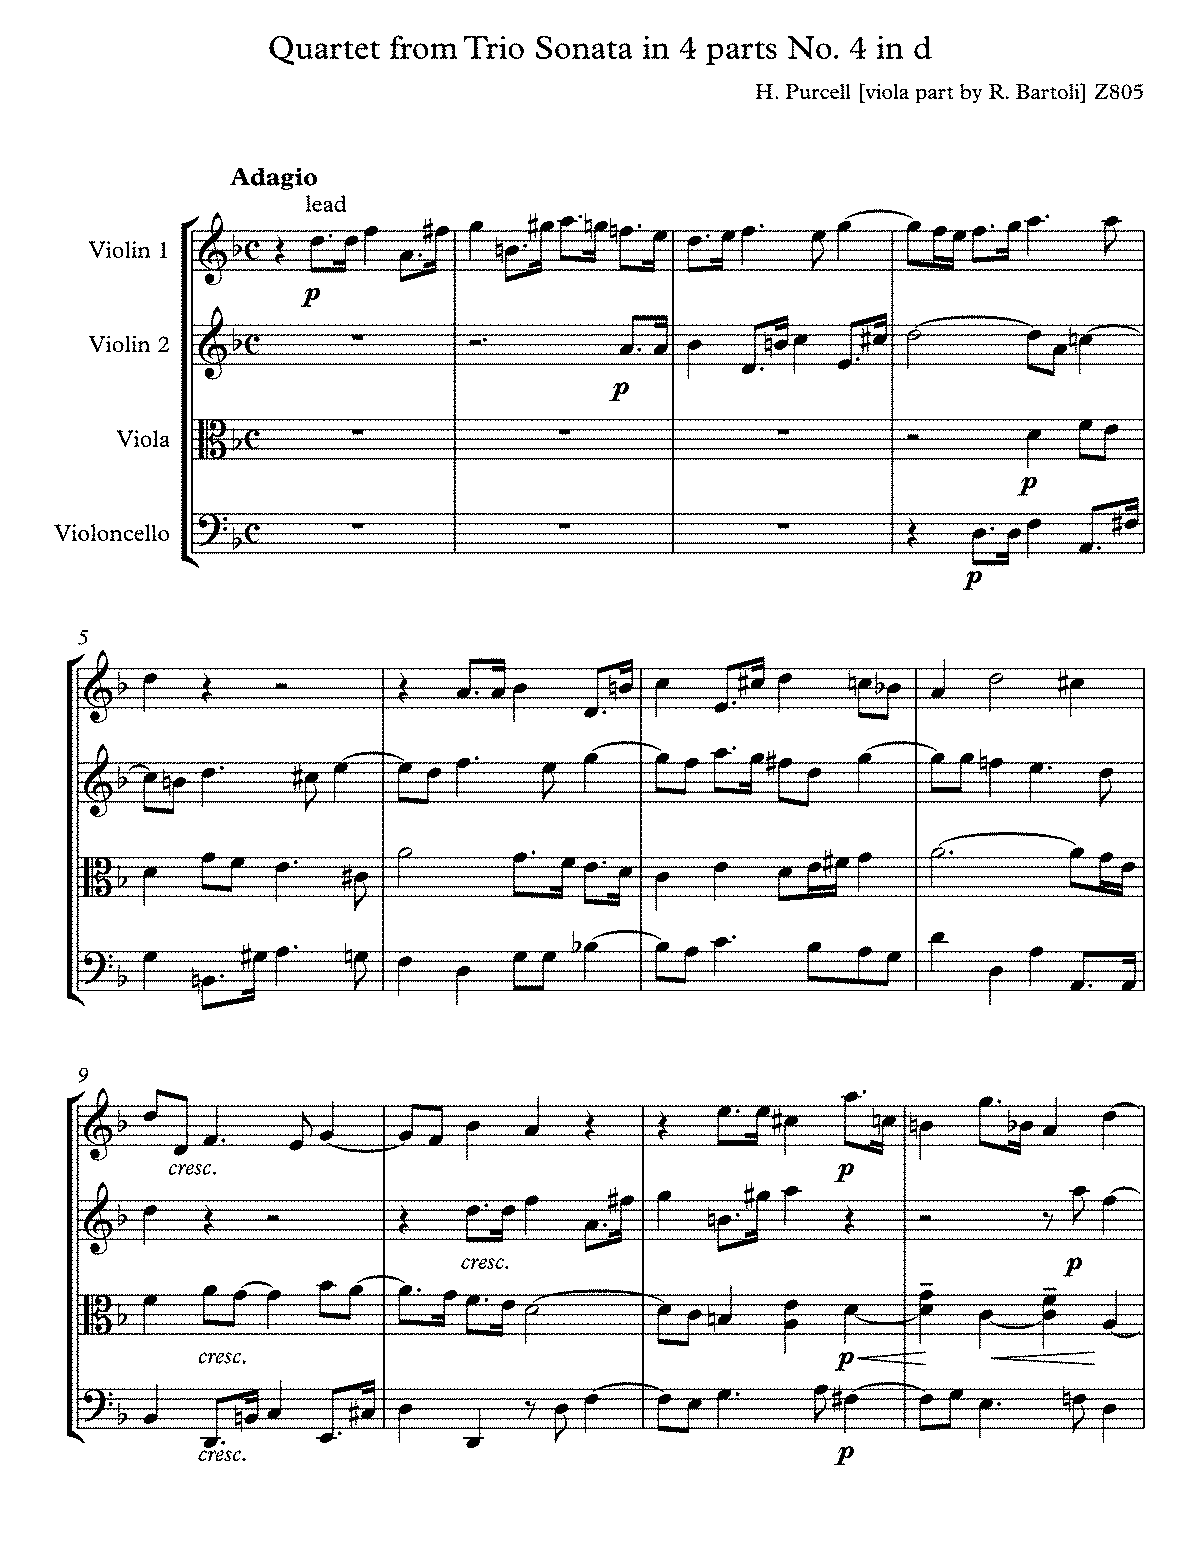 PMLP85784-Purcell Z805 Sonata in 4 parts no. 4 in d s4 parts russ D - Full Score.pdf